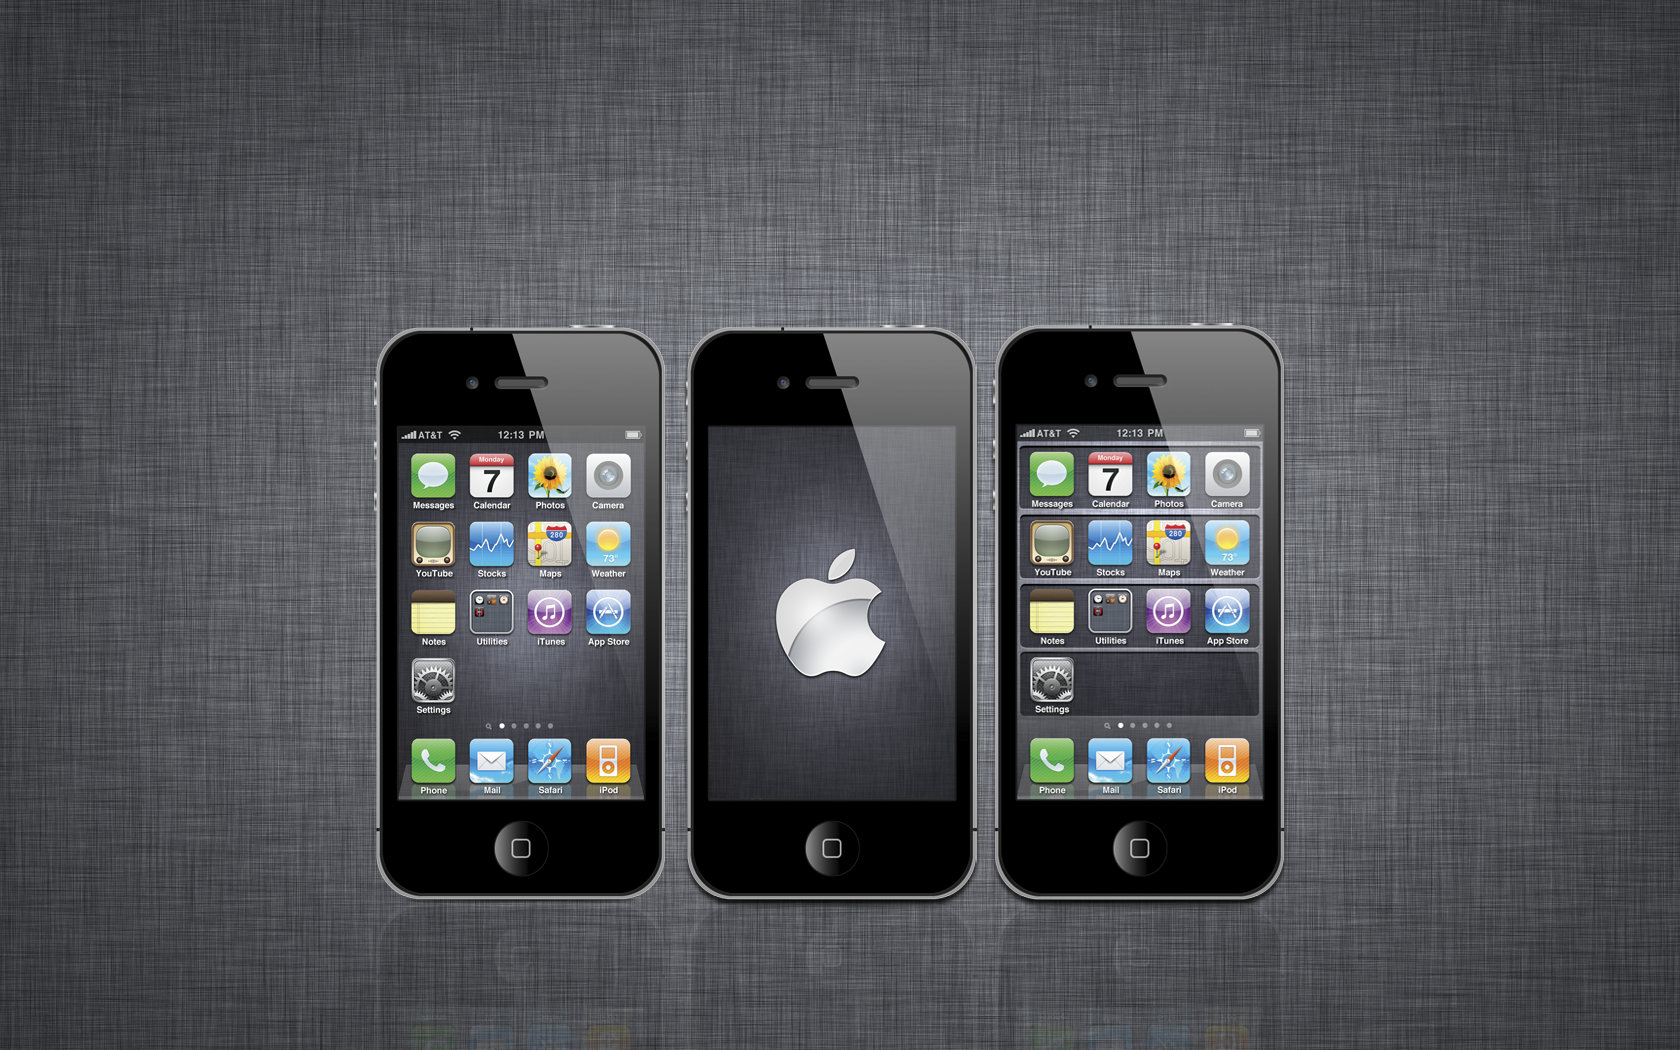 ios_5_wallpaper_pack_by_iteppo-d4f78vp